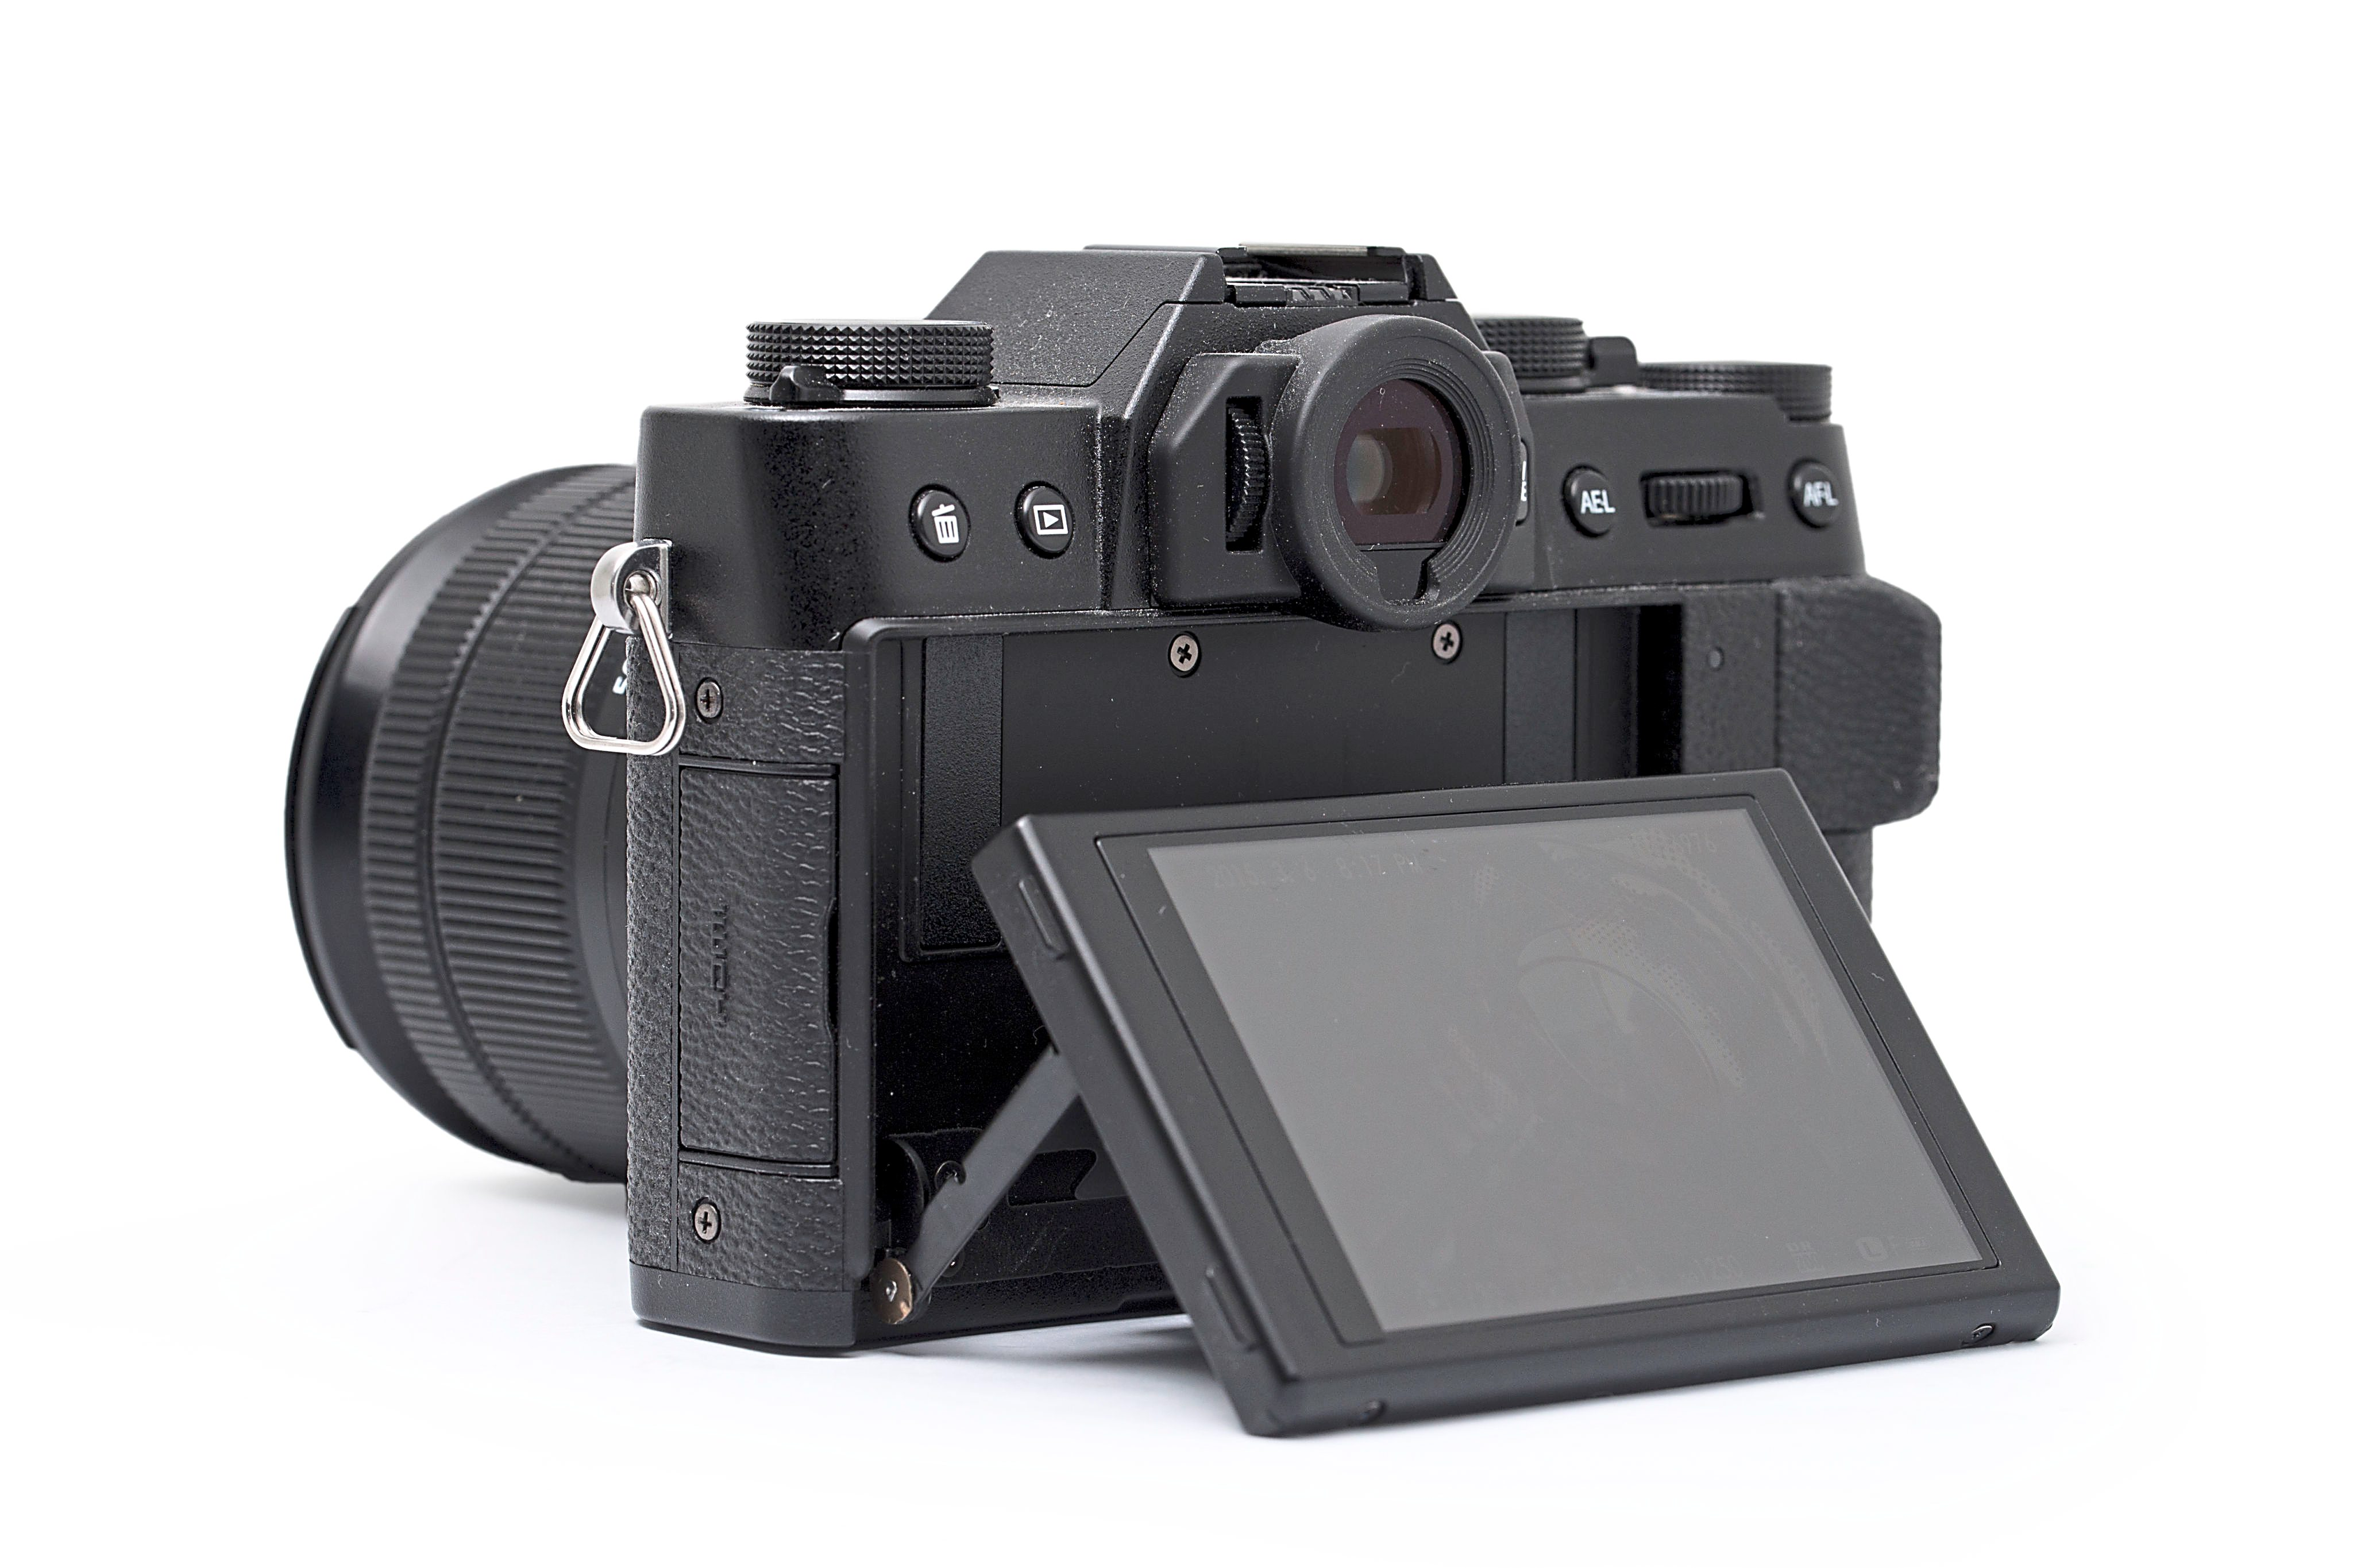 Tilt it: the Fuji X-T10 comes with a 3in tiltable LCD screen